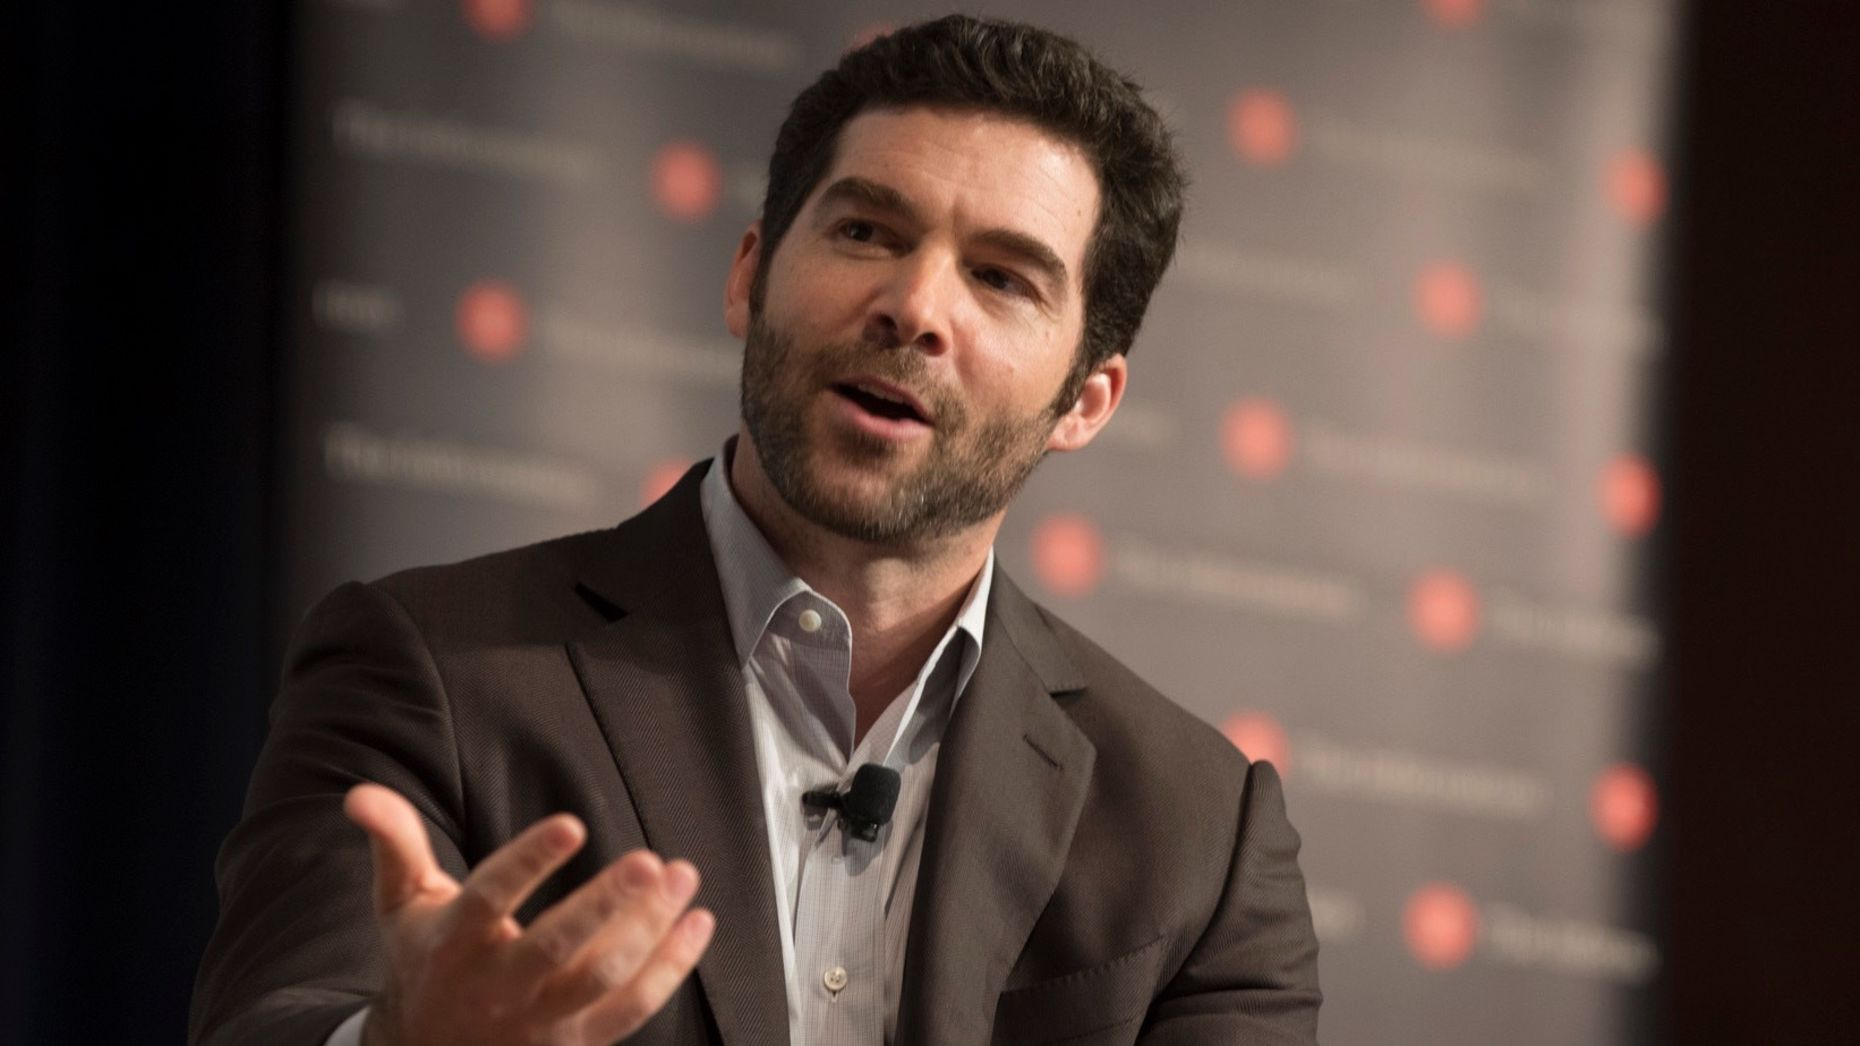 LinkedIn CEO Jeff Weiner. Photo by Erin Beach.